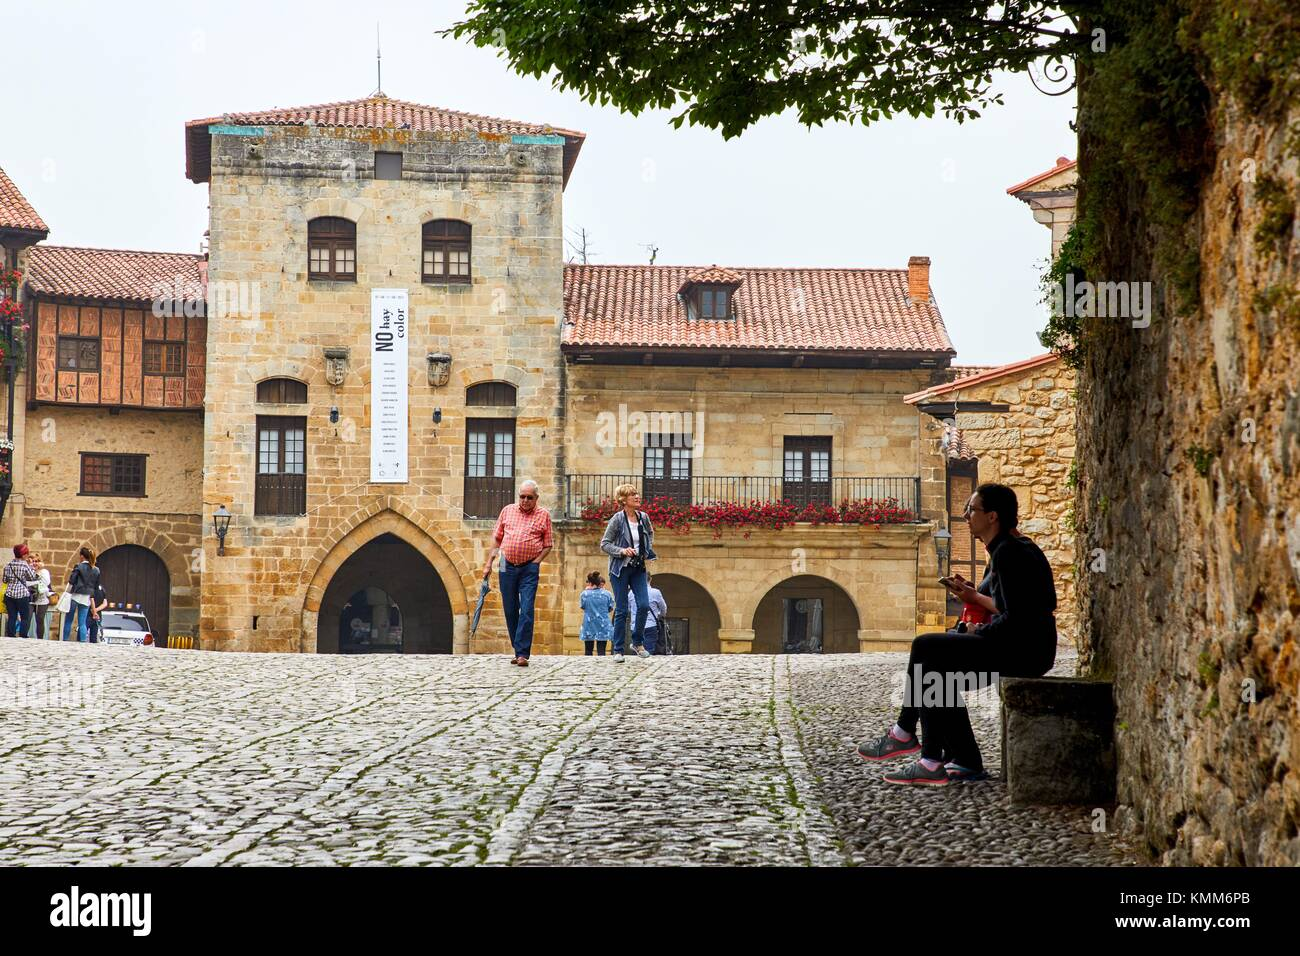 Plaza Mayor, Santillana del Mar, Cantabria, Spain, Europe - Stock Image